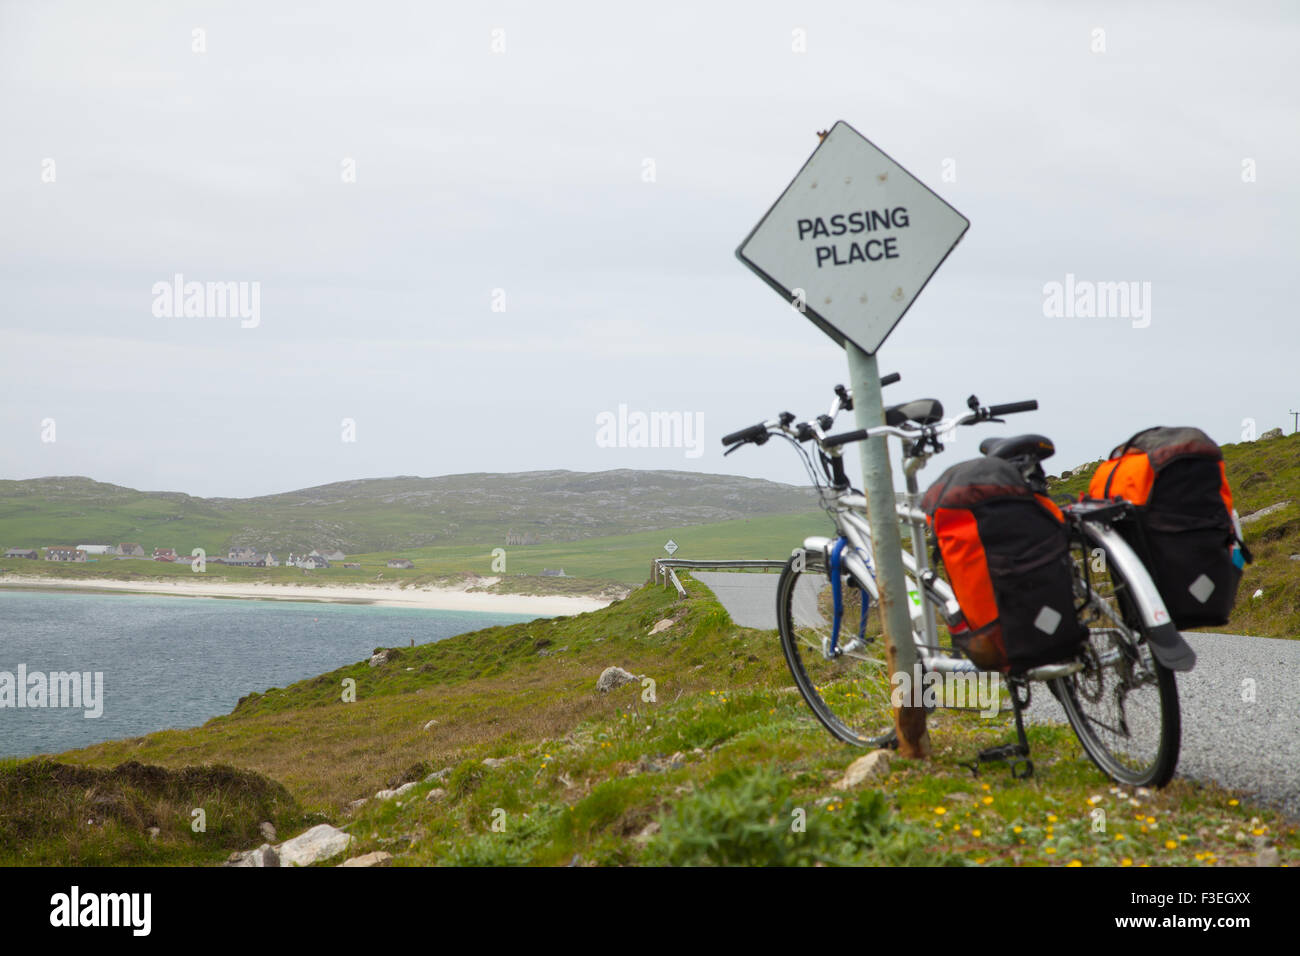 Approaching Vatersay's East beach, Outer Hebrides, Scotland, UK - Stock Image